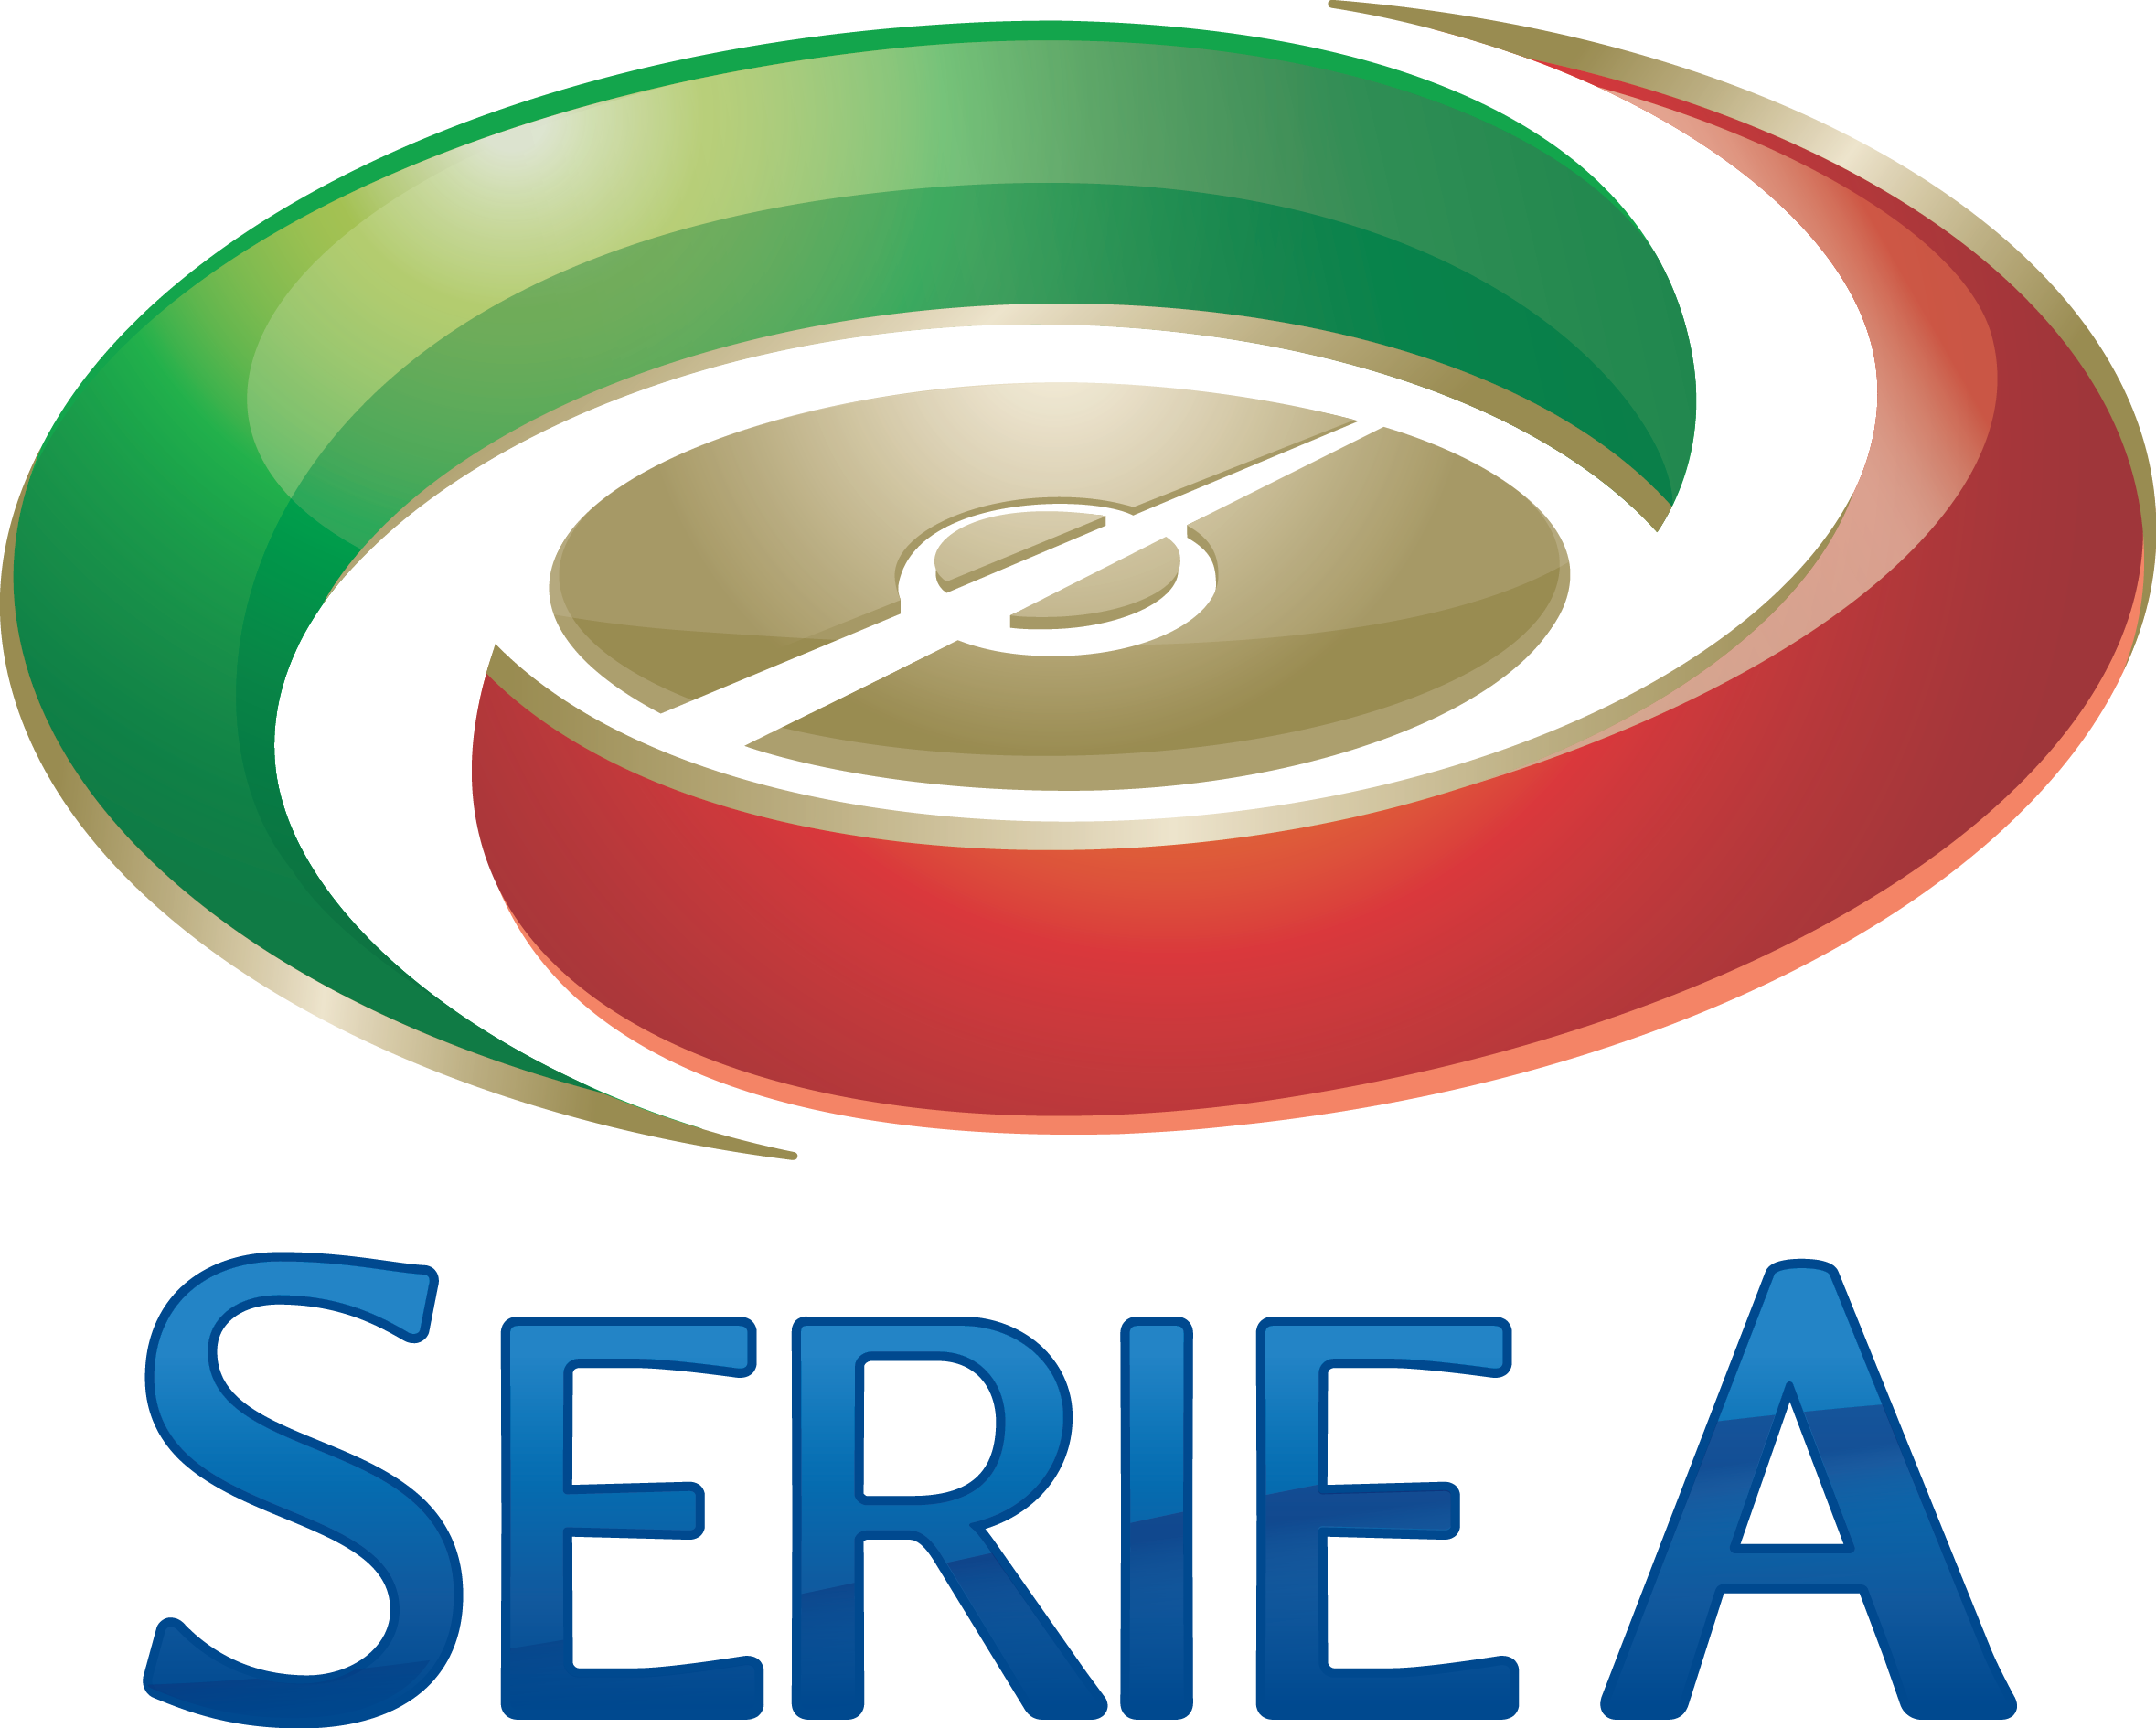 Udinese vs Genoa 1-1 All goals and highlights 04/10/2015